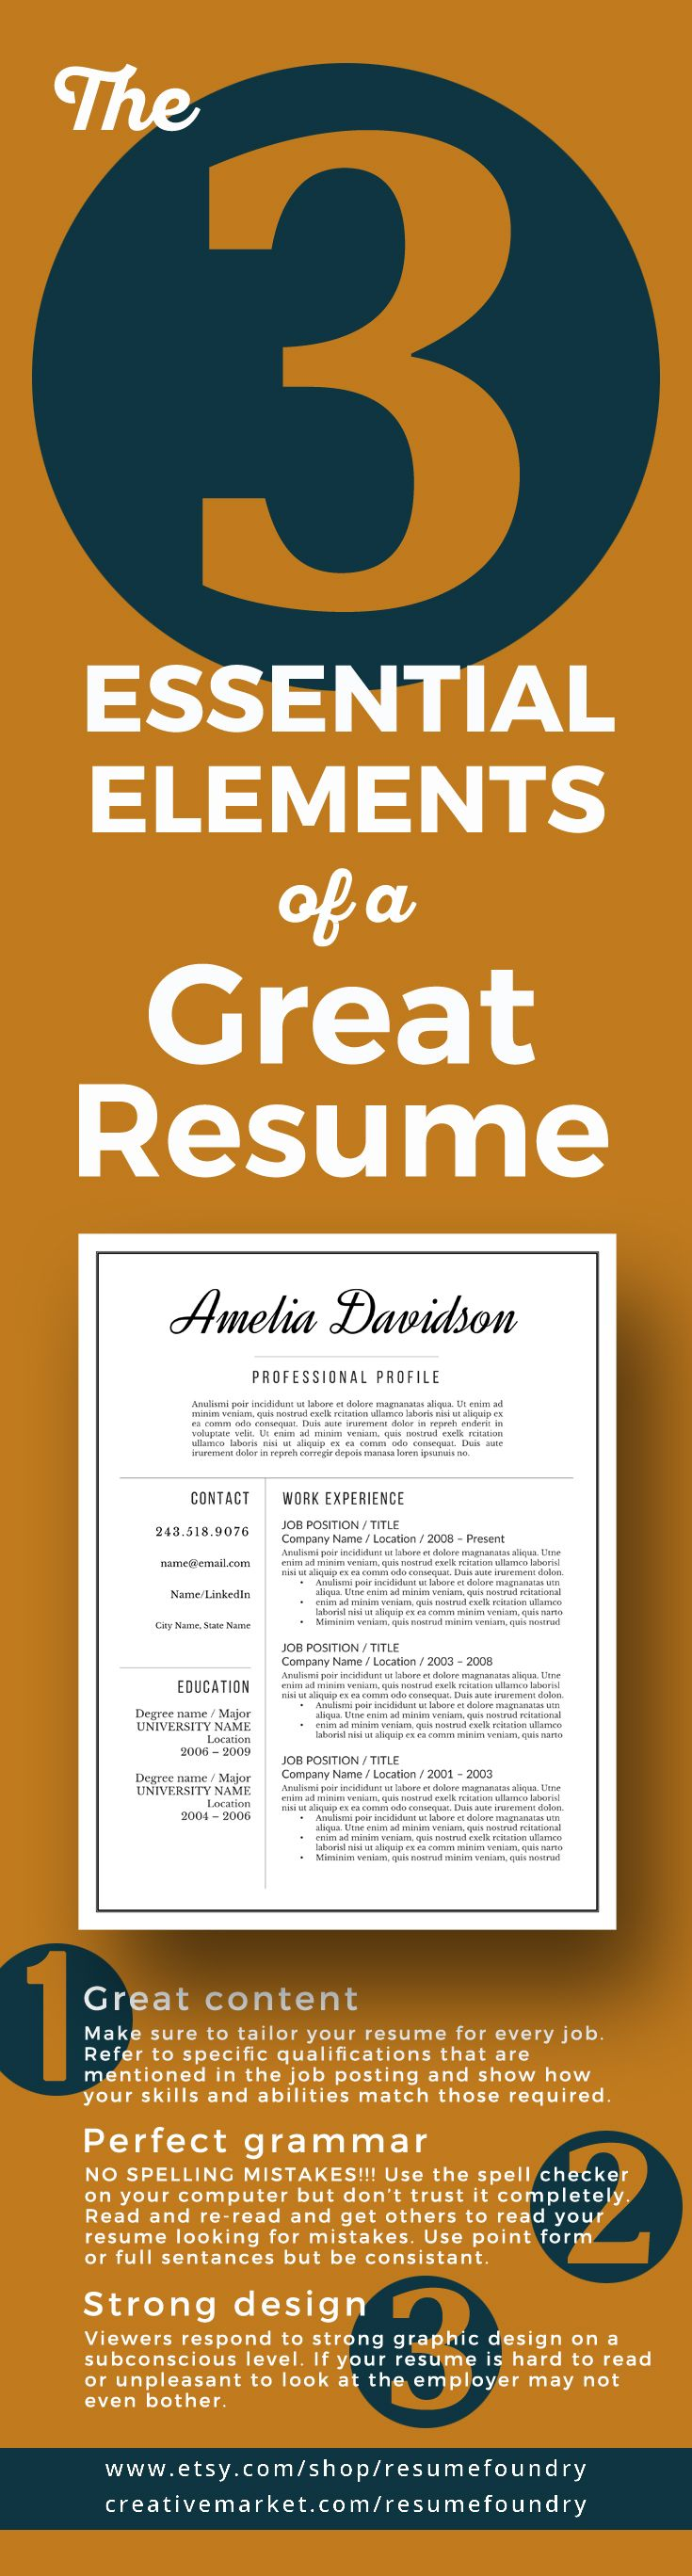 making a resume for free%0A Make sure to include these three essential elements to perfect your resume   Resume Foundry